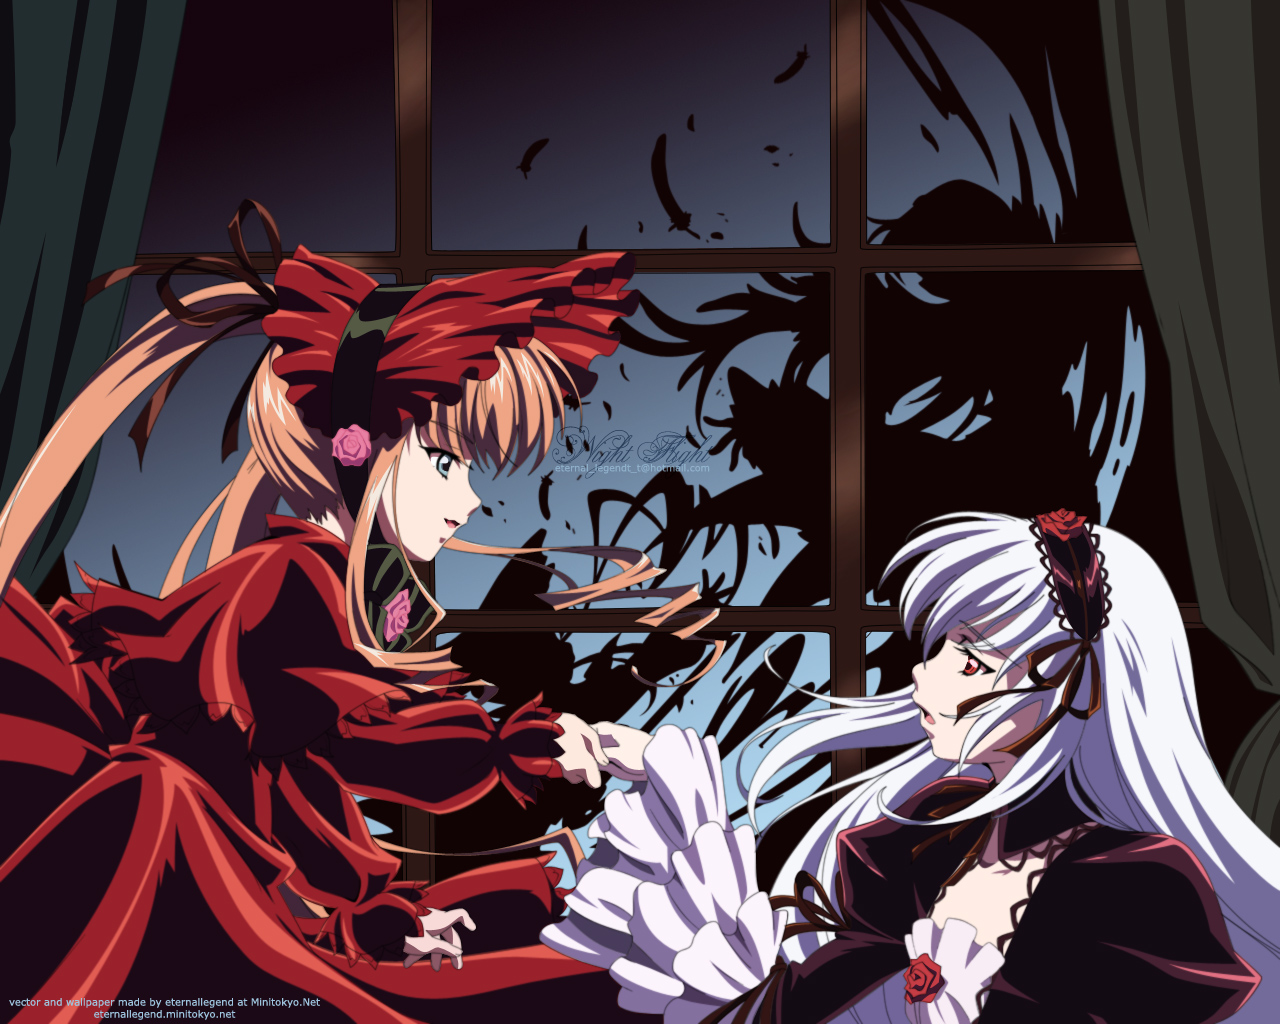 Rozen Maiden Wallpaper Night Flight Minitokyo